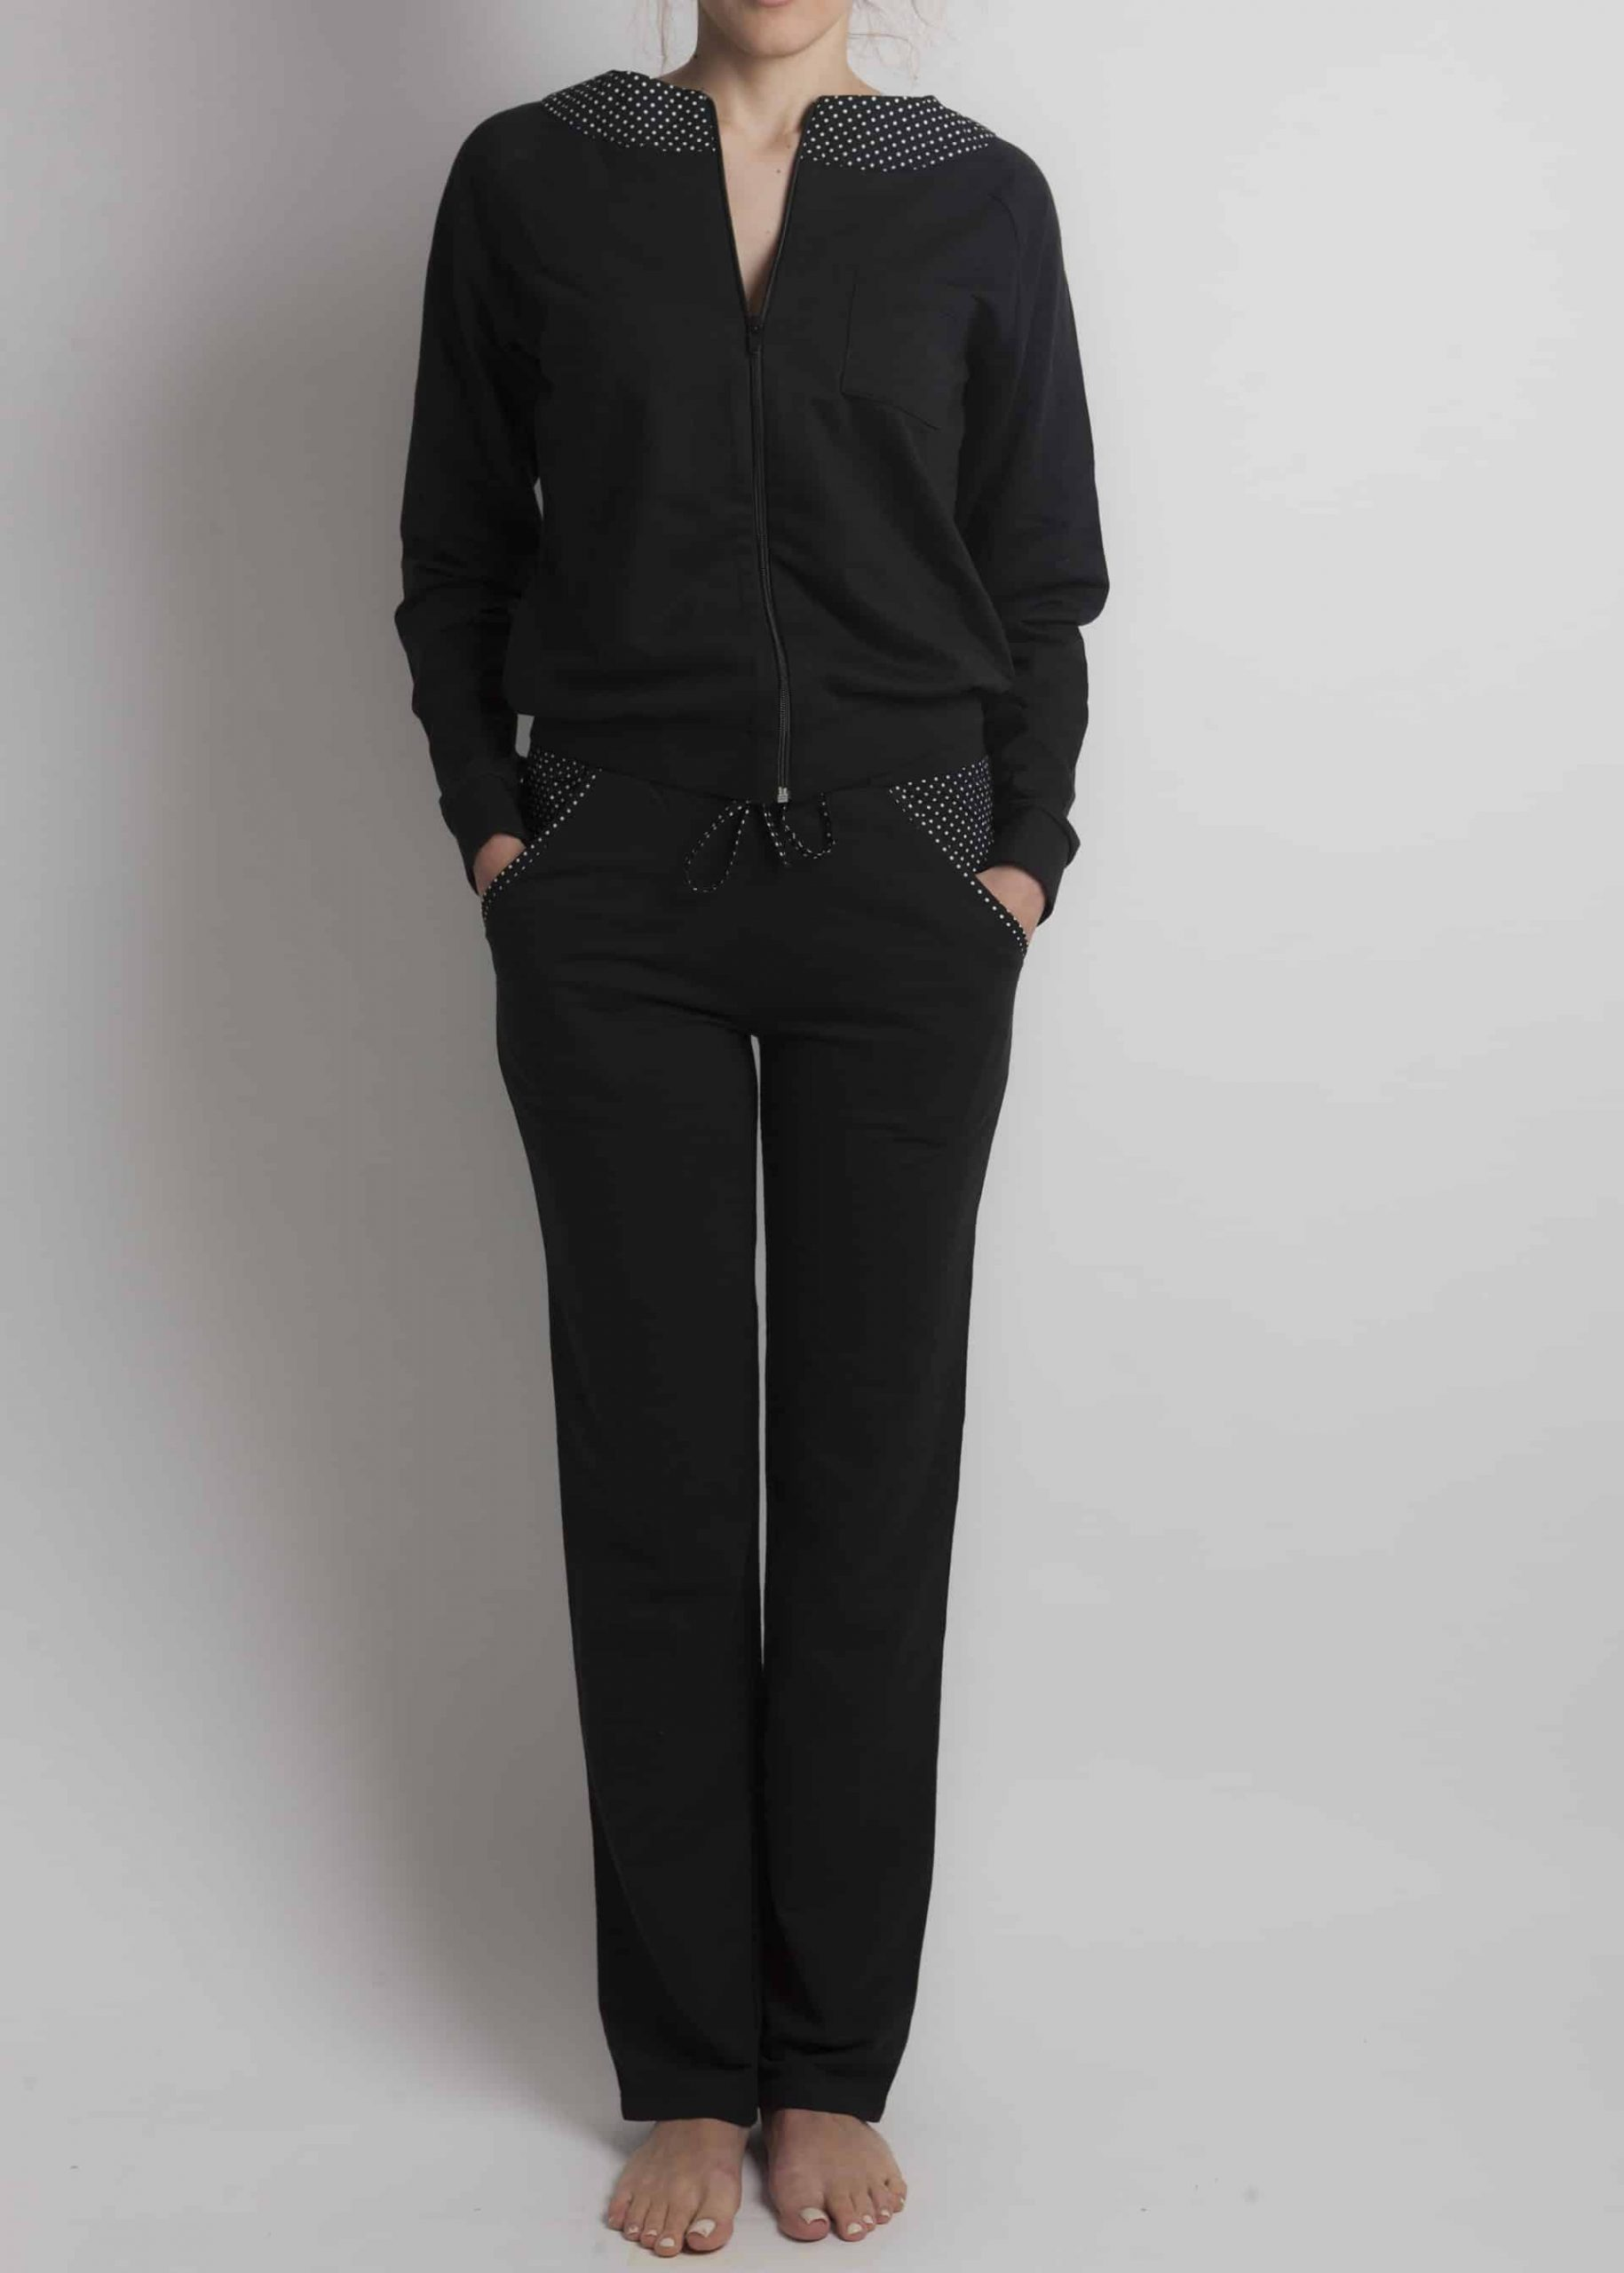 dotty_83102_jacket_trousers_black_front_m_1